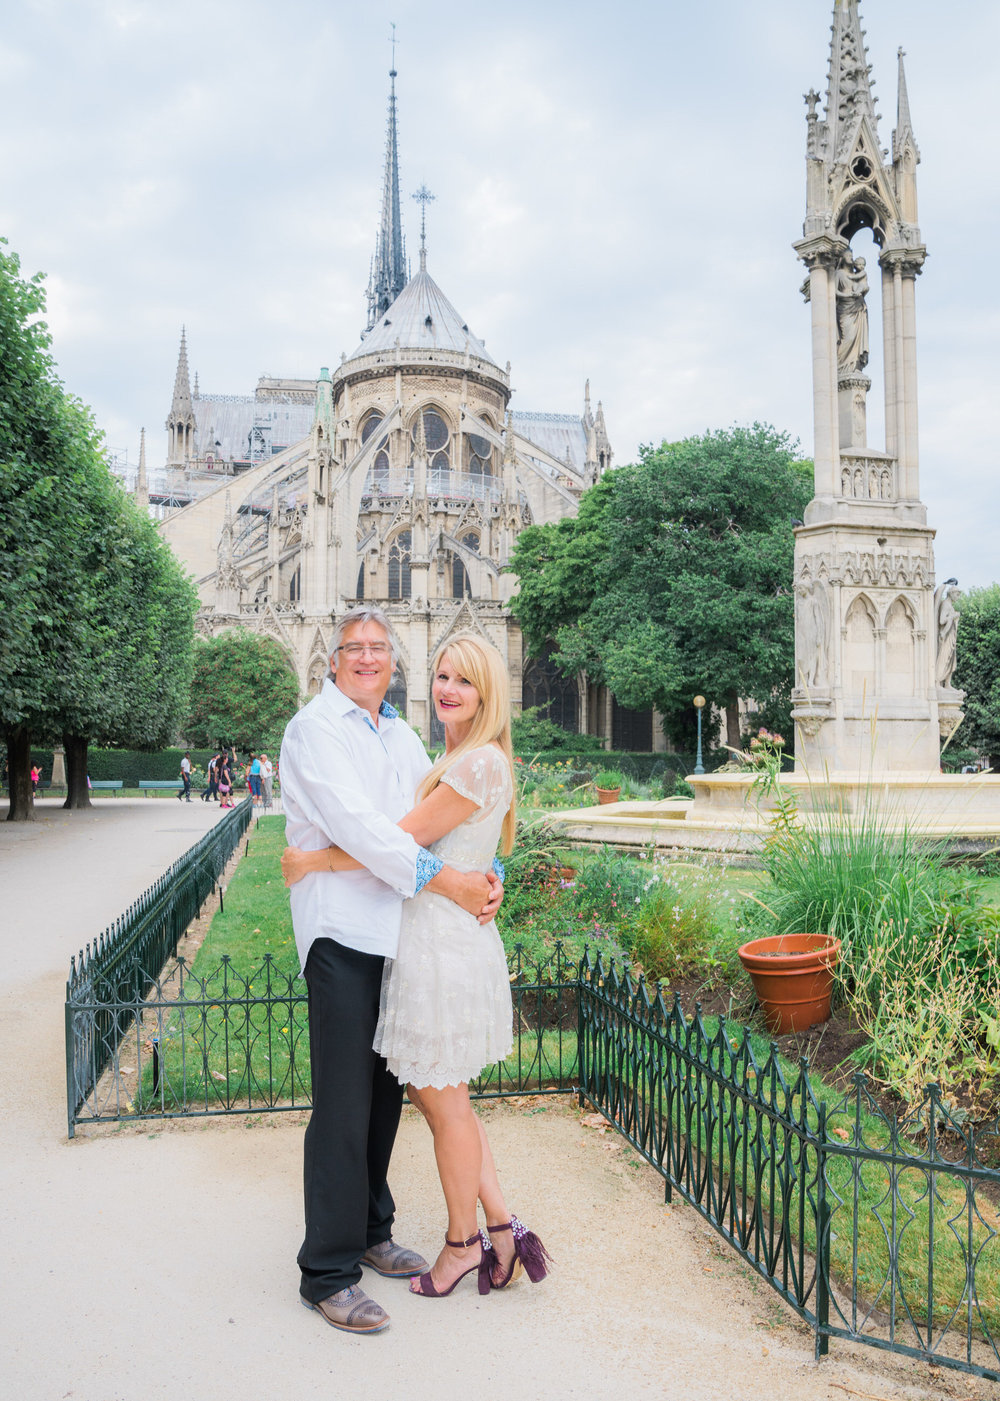 family photo session in paris at notre dame cathedral with picture me paris